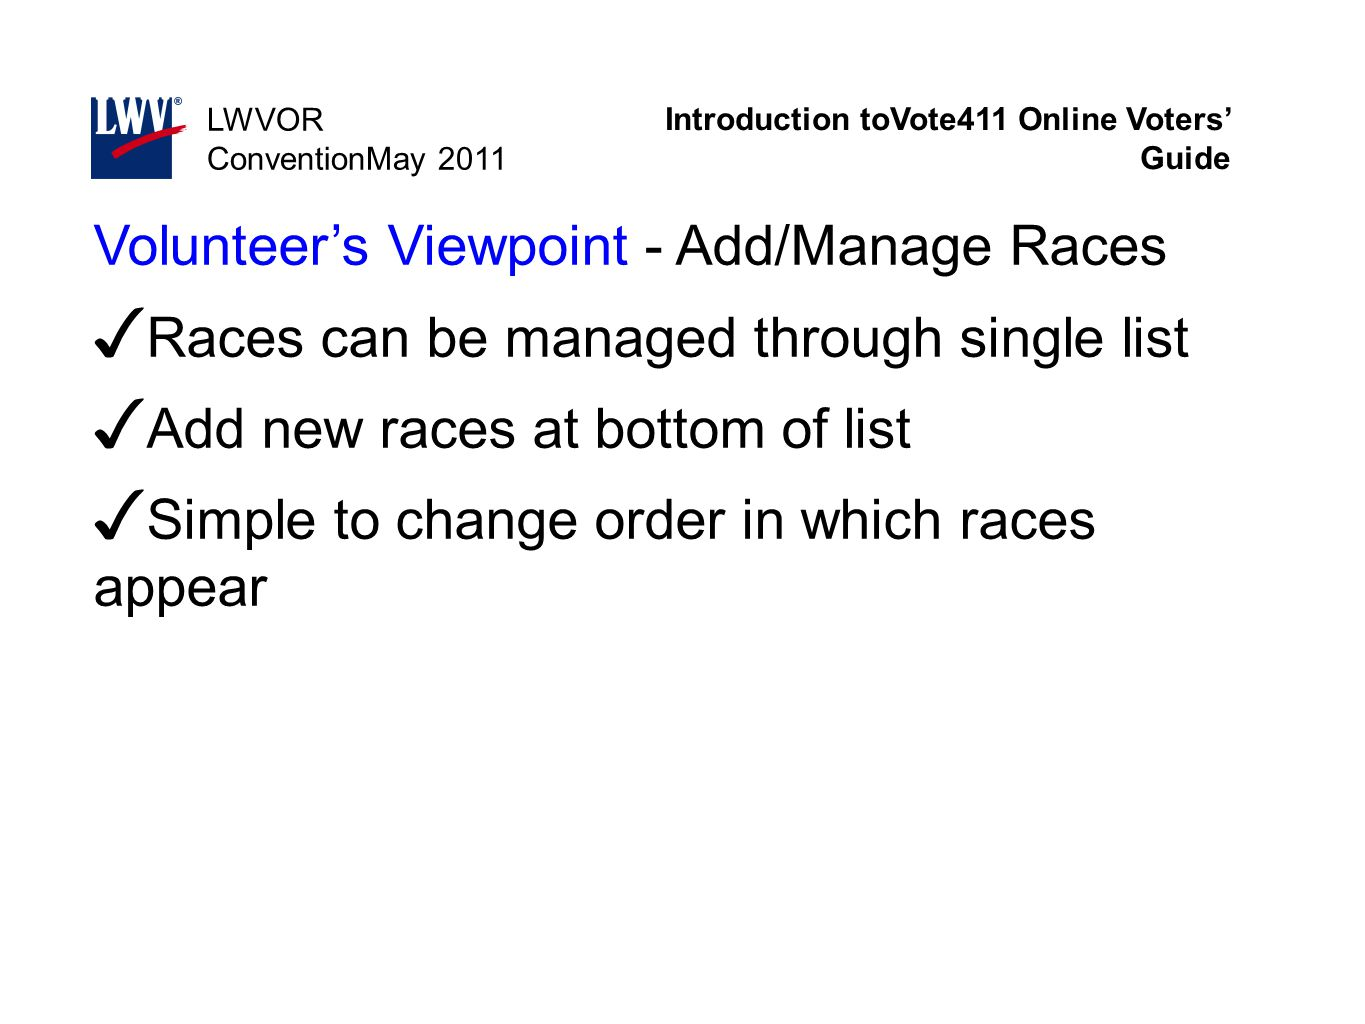 Introduction toVote411 Online Voters' Guide LWVOR ConventionMay 2011 Volunteer's Viewpoint - Add/Manage Races ✓ Races can be managed through single li